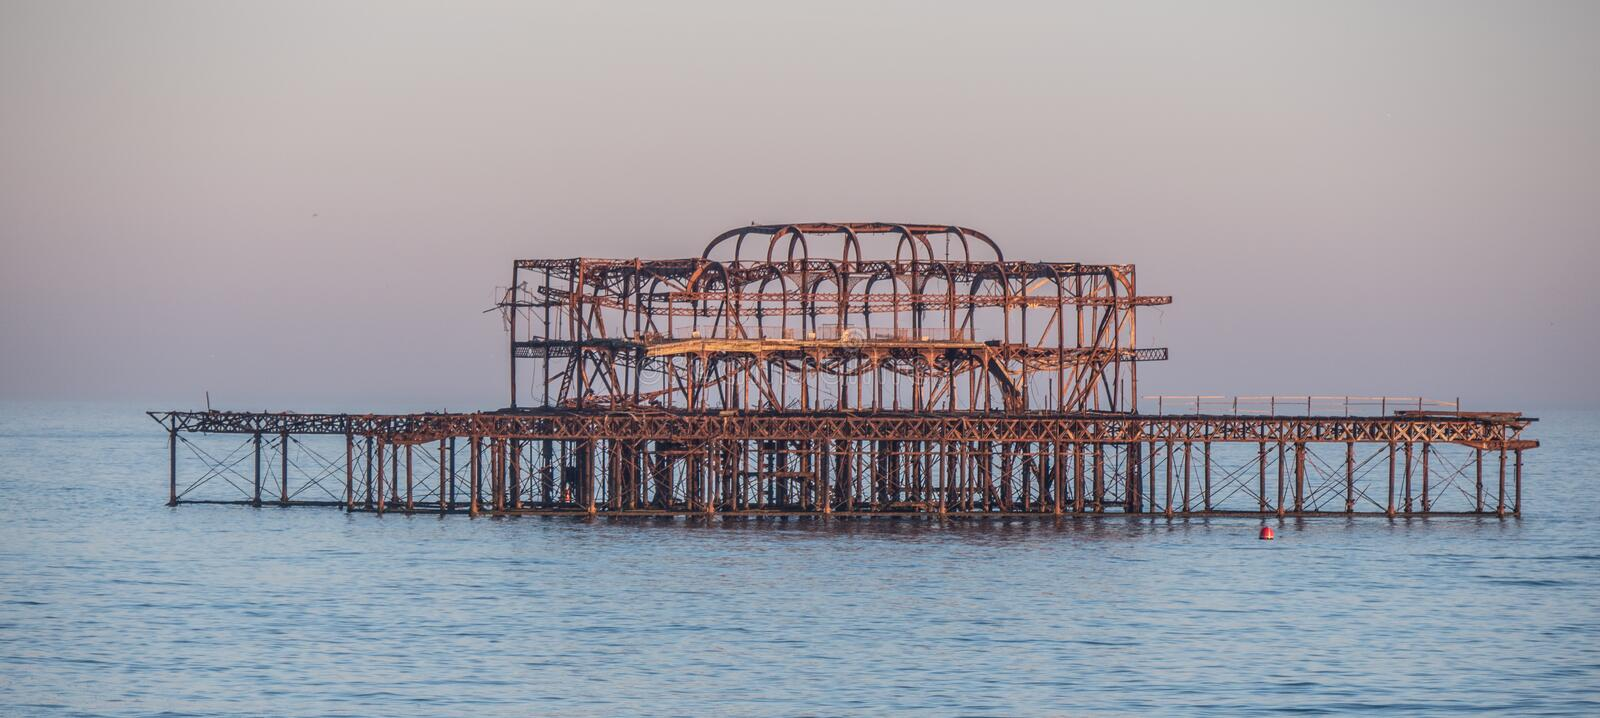 The remains of former Brighton Pier. Travel photography royalty free stock photos